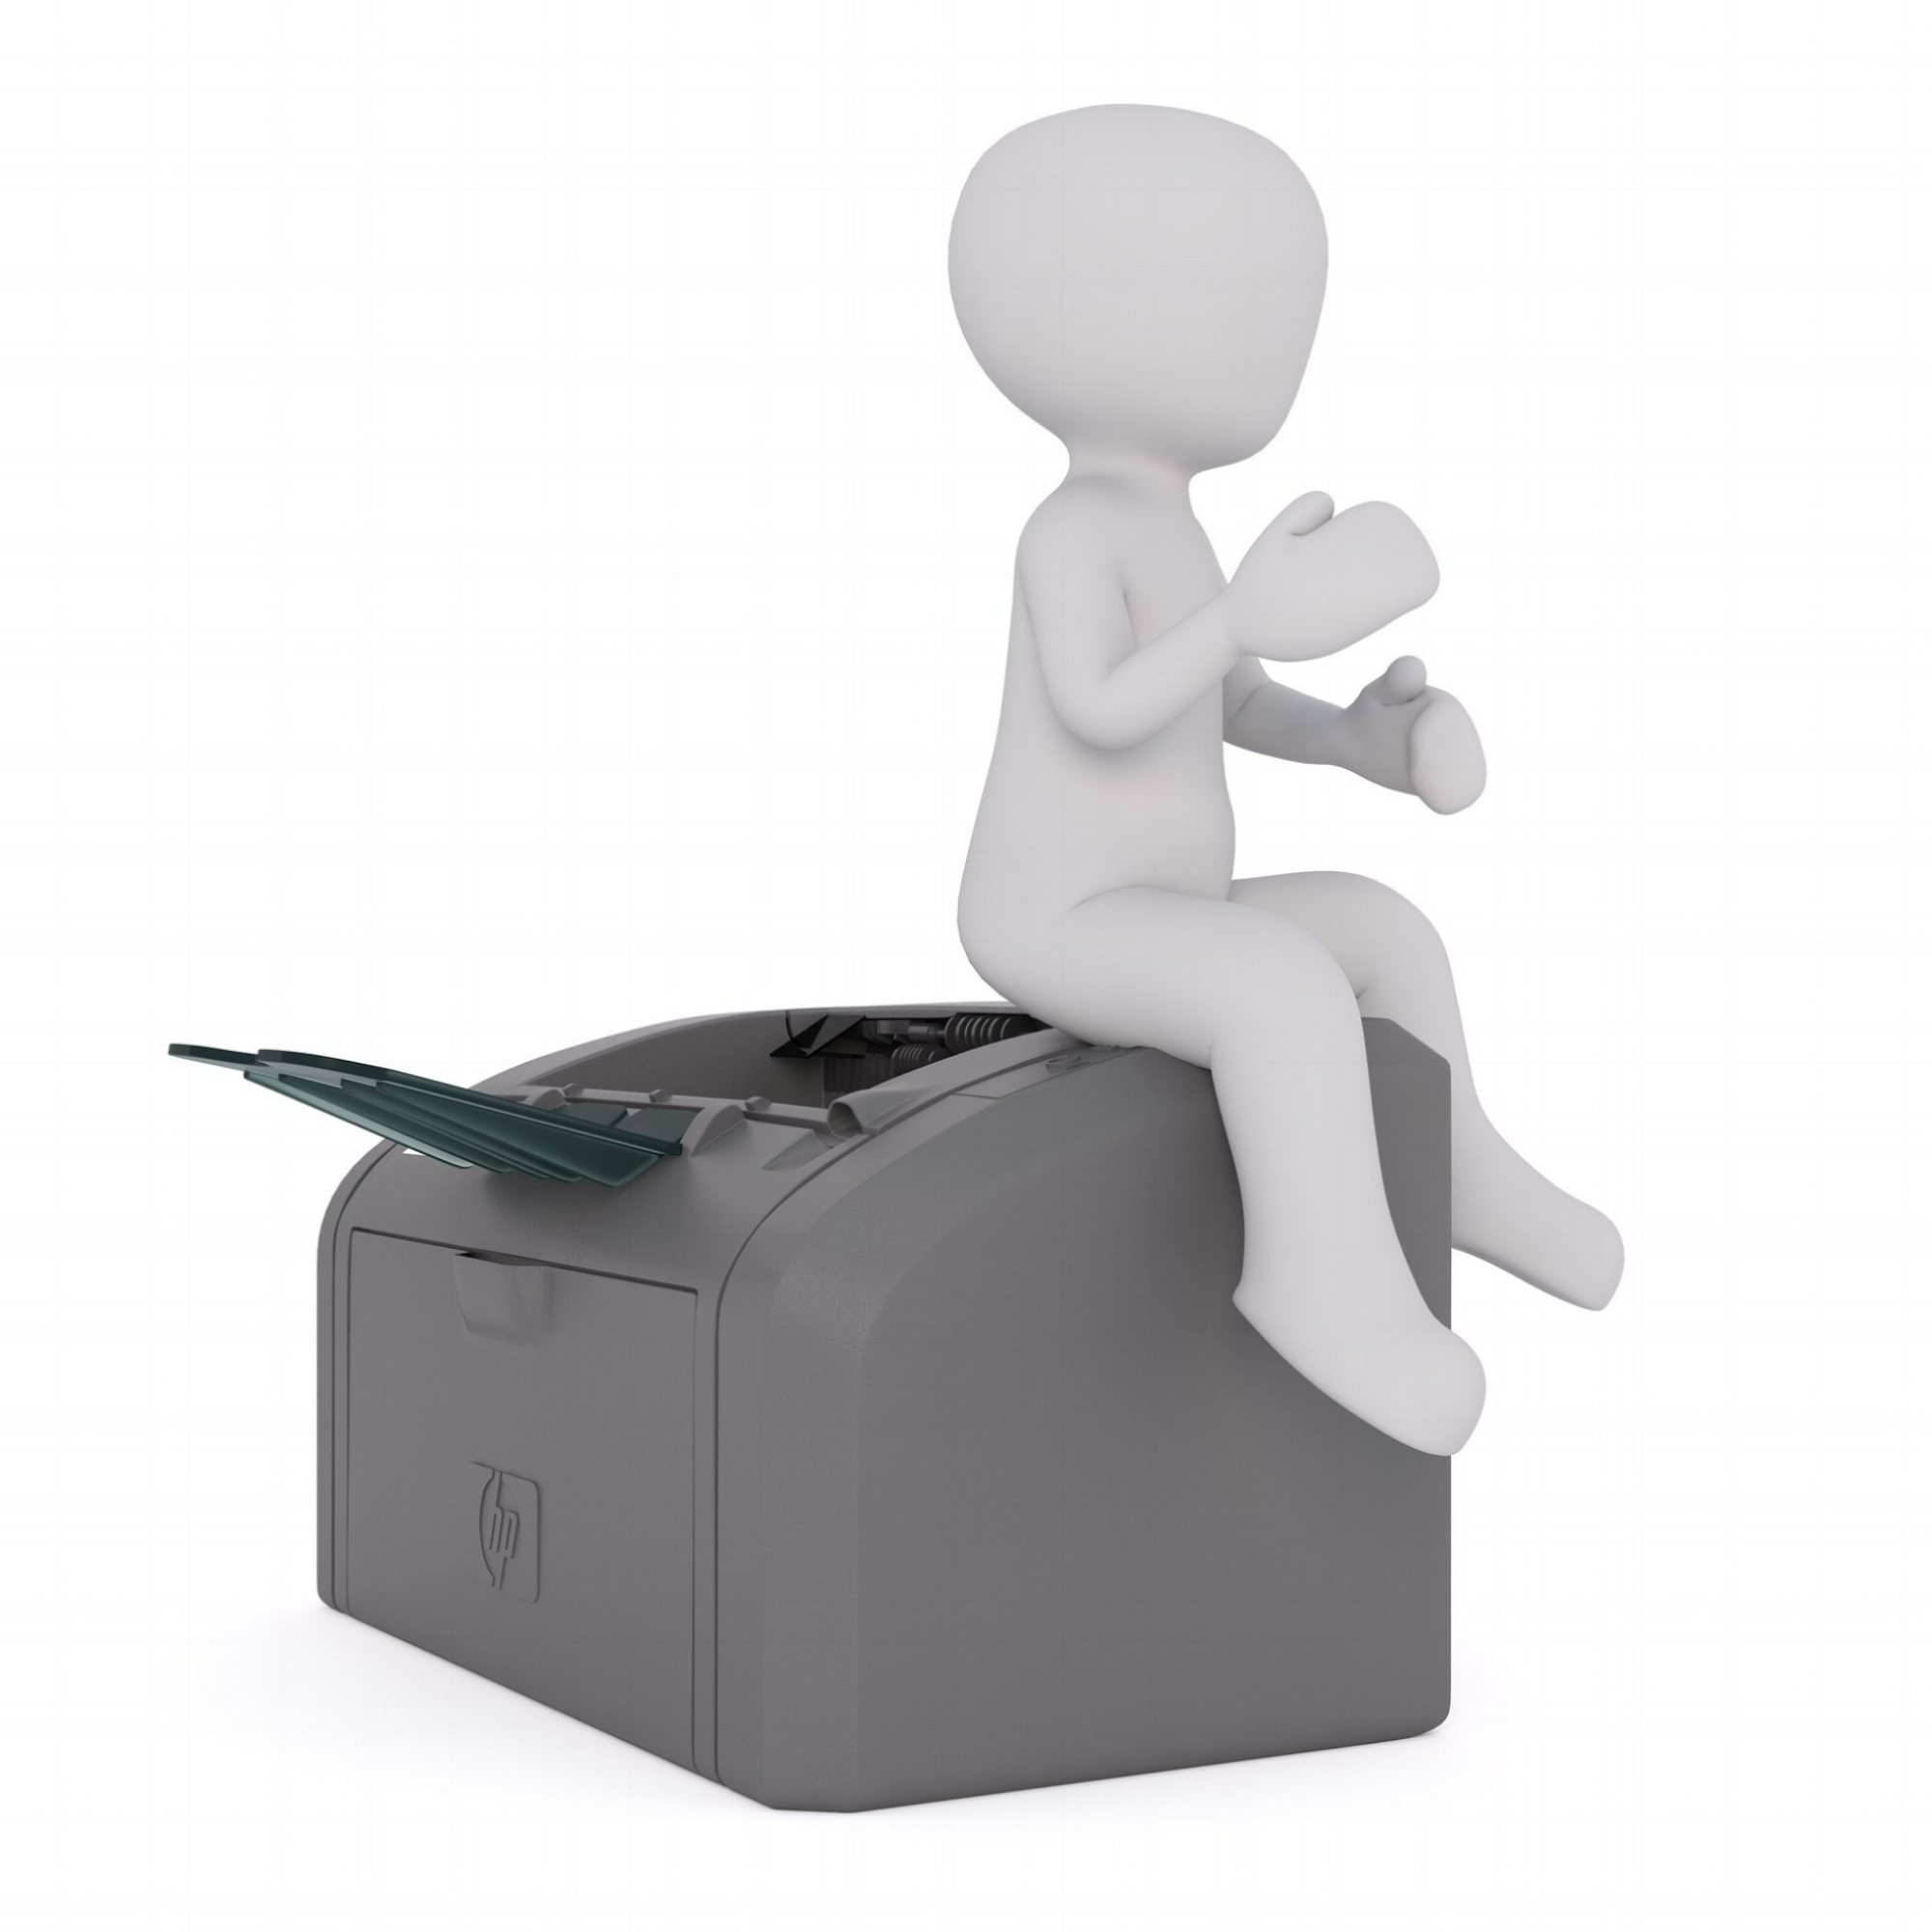 Manual Scanning of Incoming Faxed Documents